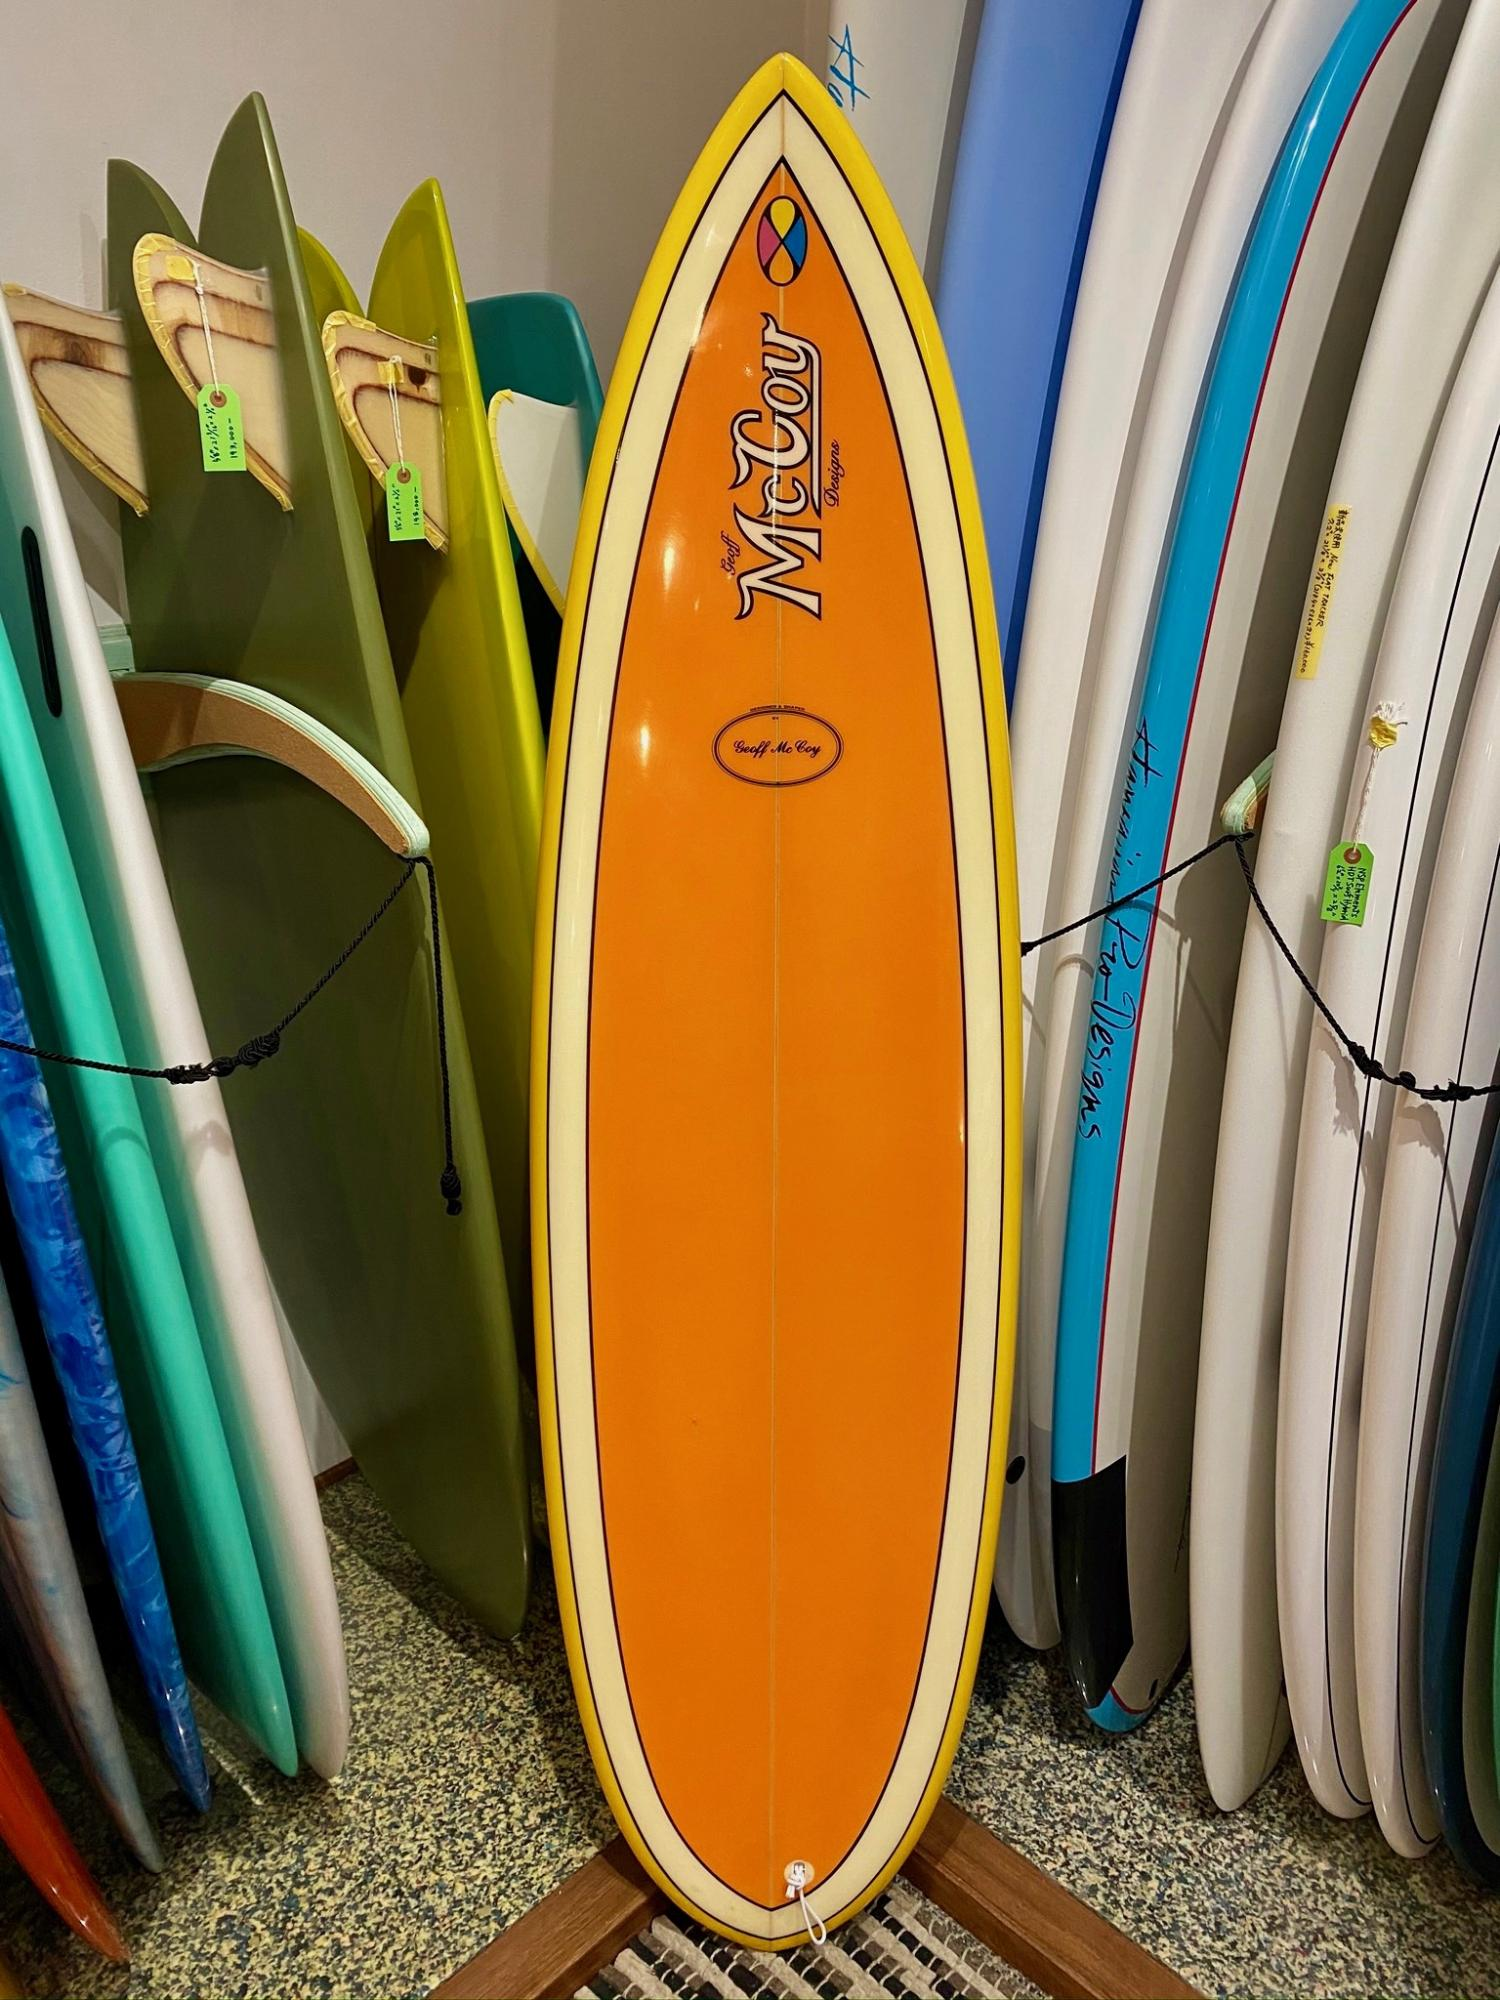 USED BOARDS (Channel Islands CI FISH 5.8)